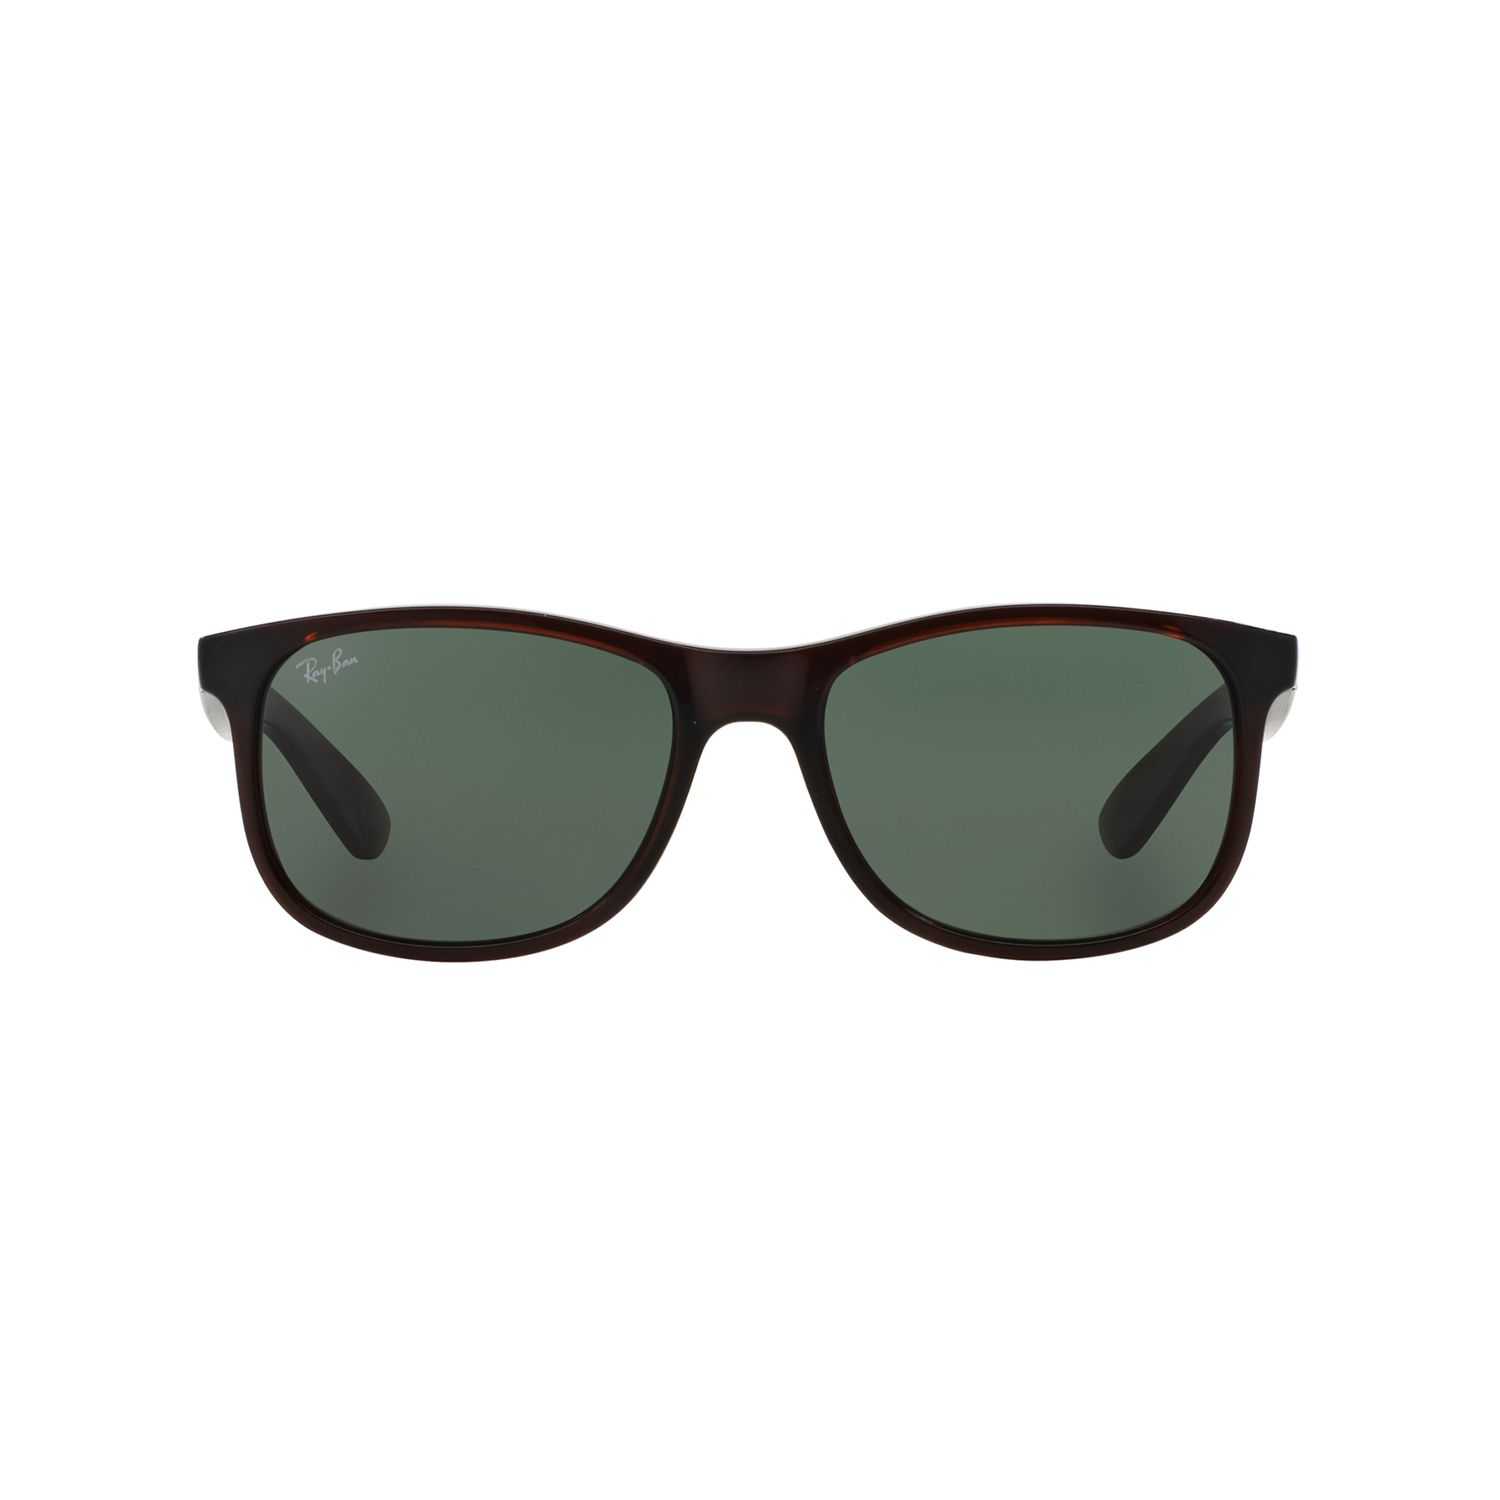 7a4df427970 Ray Ban 3445 Polarized « One More Soul